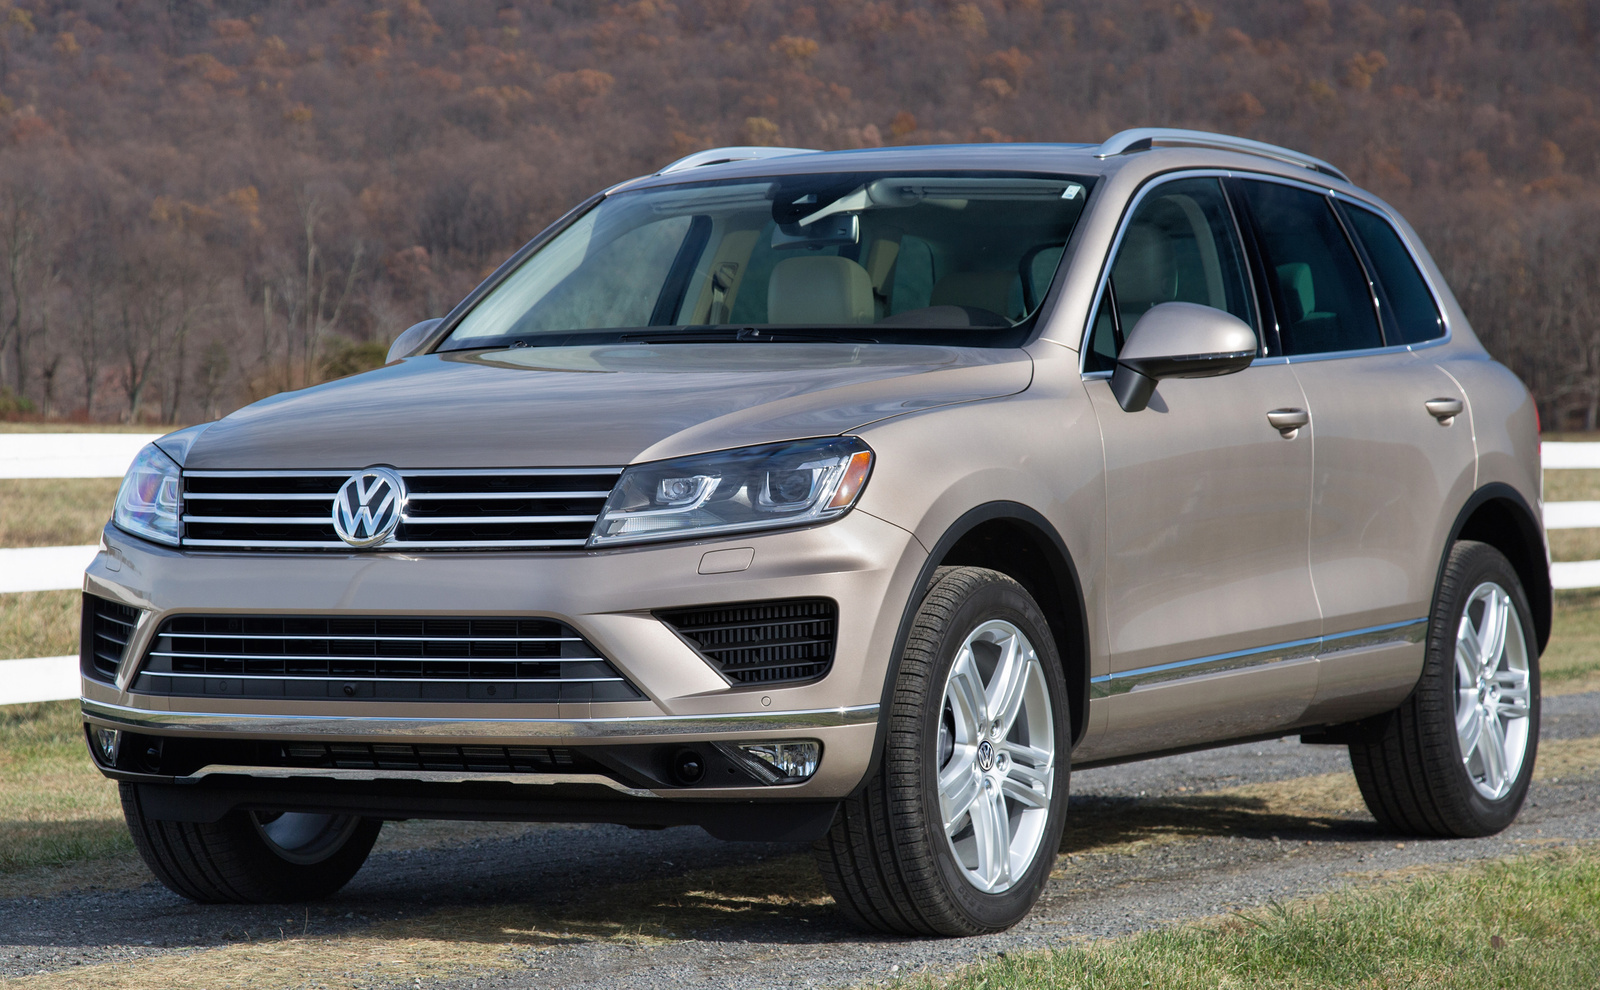 2015 volkswagen touareg overview cargurus. Black Bedroom Furniture Sets. Home Design Ideas